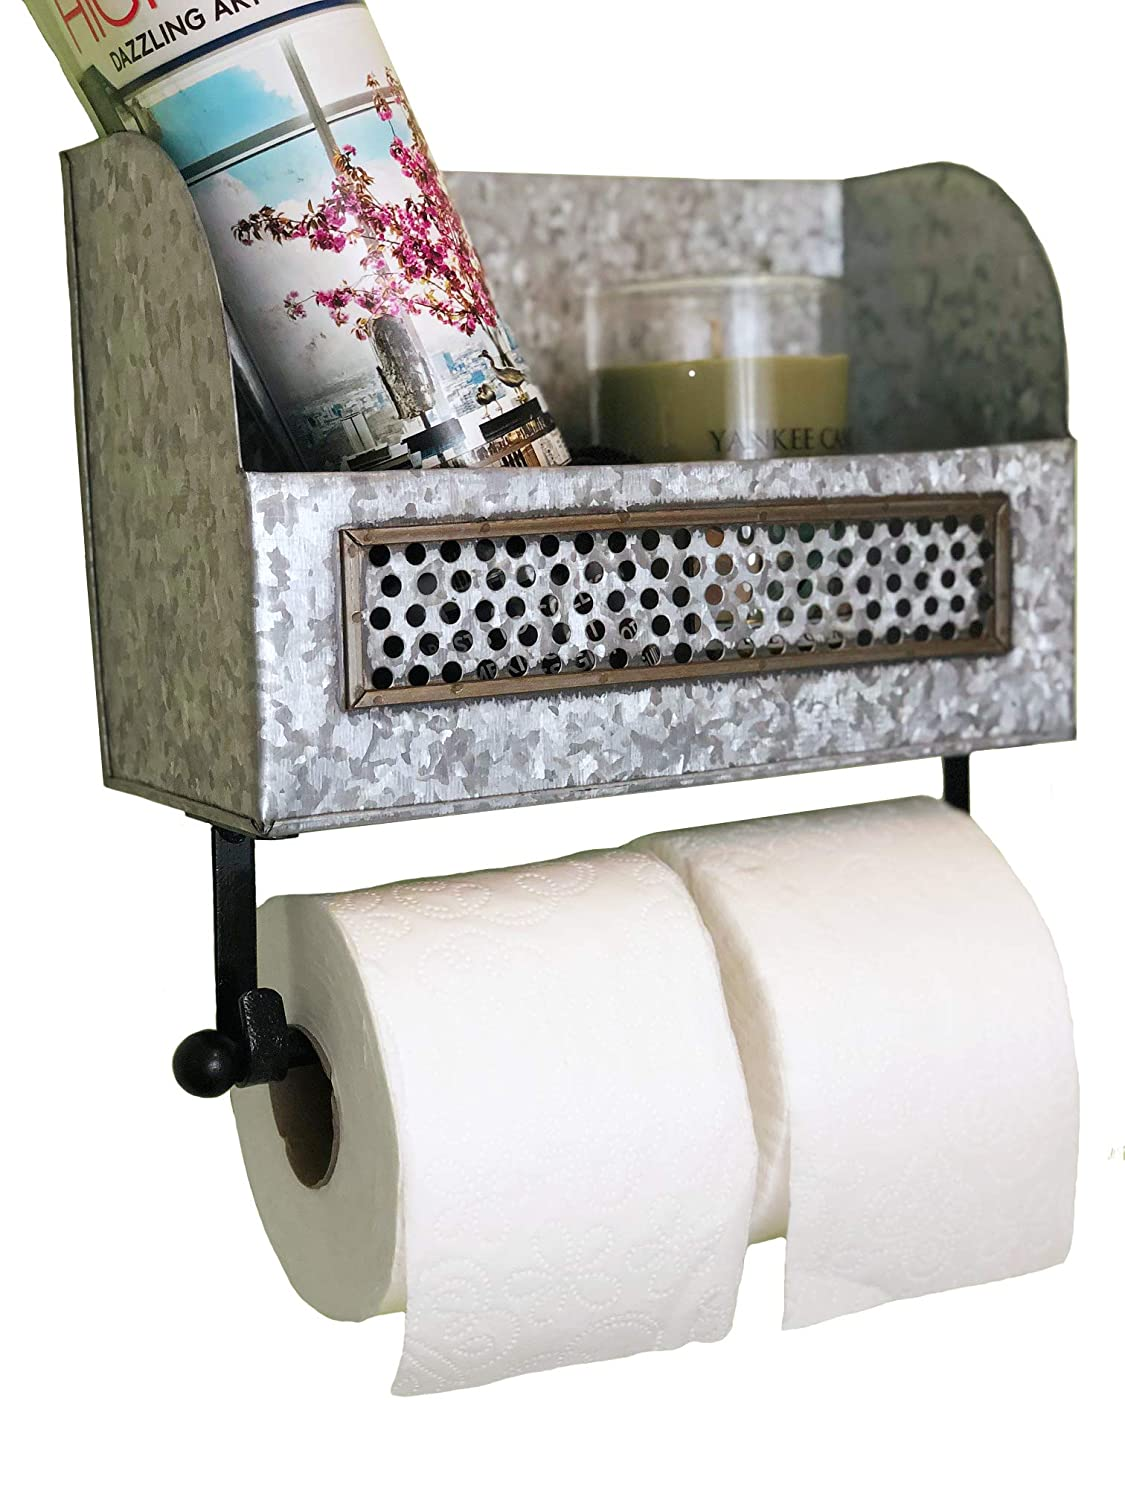 Autumn Alley Farmhouse Galvanized Double Roll Toilet Paper Holder with Shelf | Magazine Rack | Sturdy and Stylish Holder Adds Farmhouse Warmth and Organization